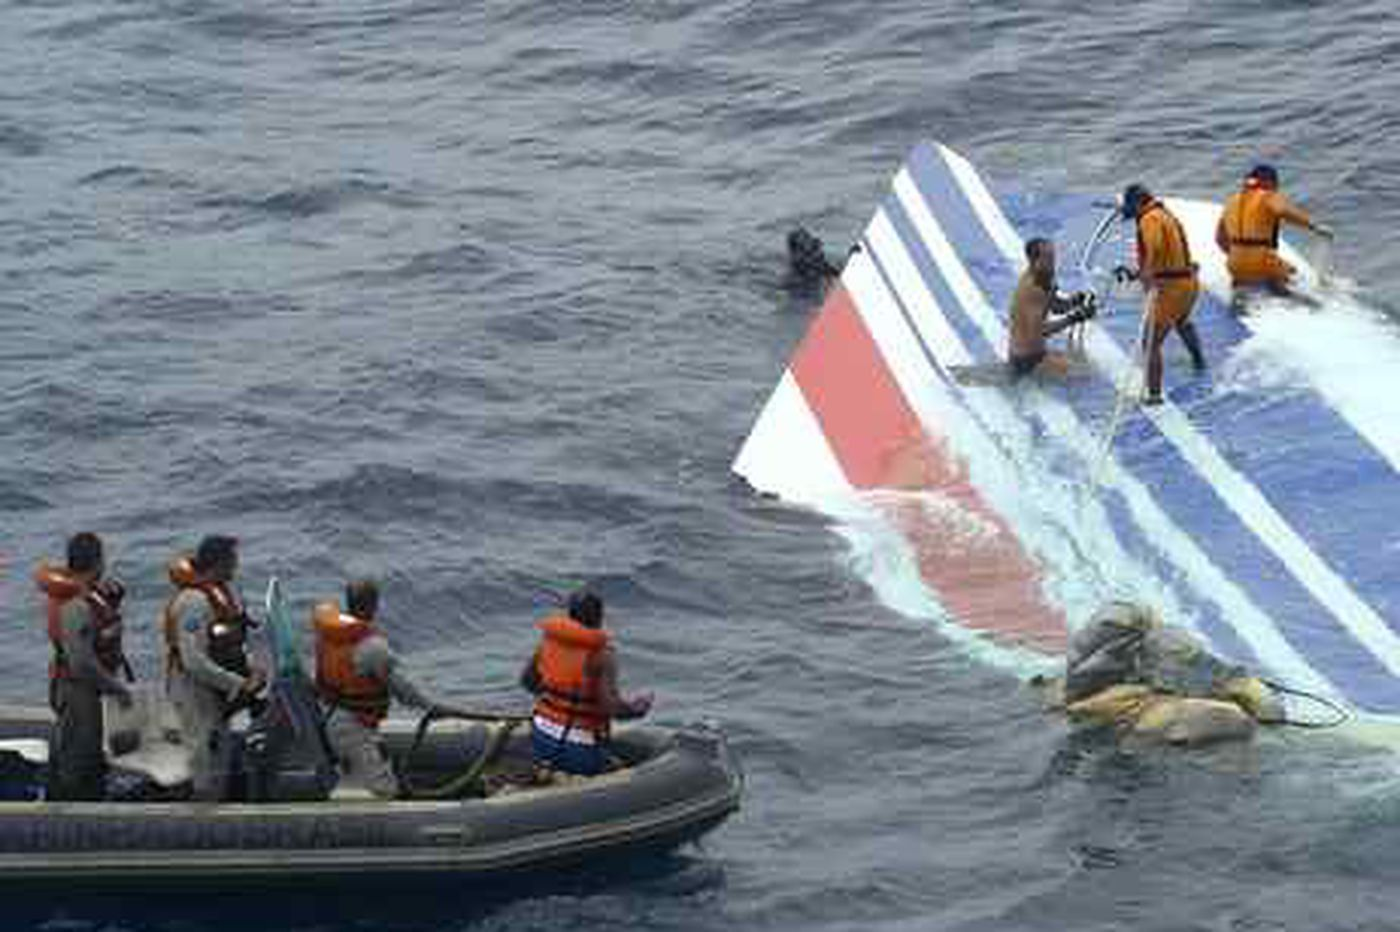 Vertical stabilizer retrieved